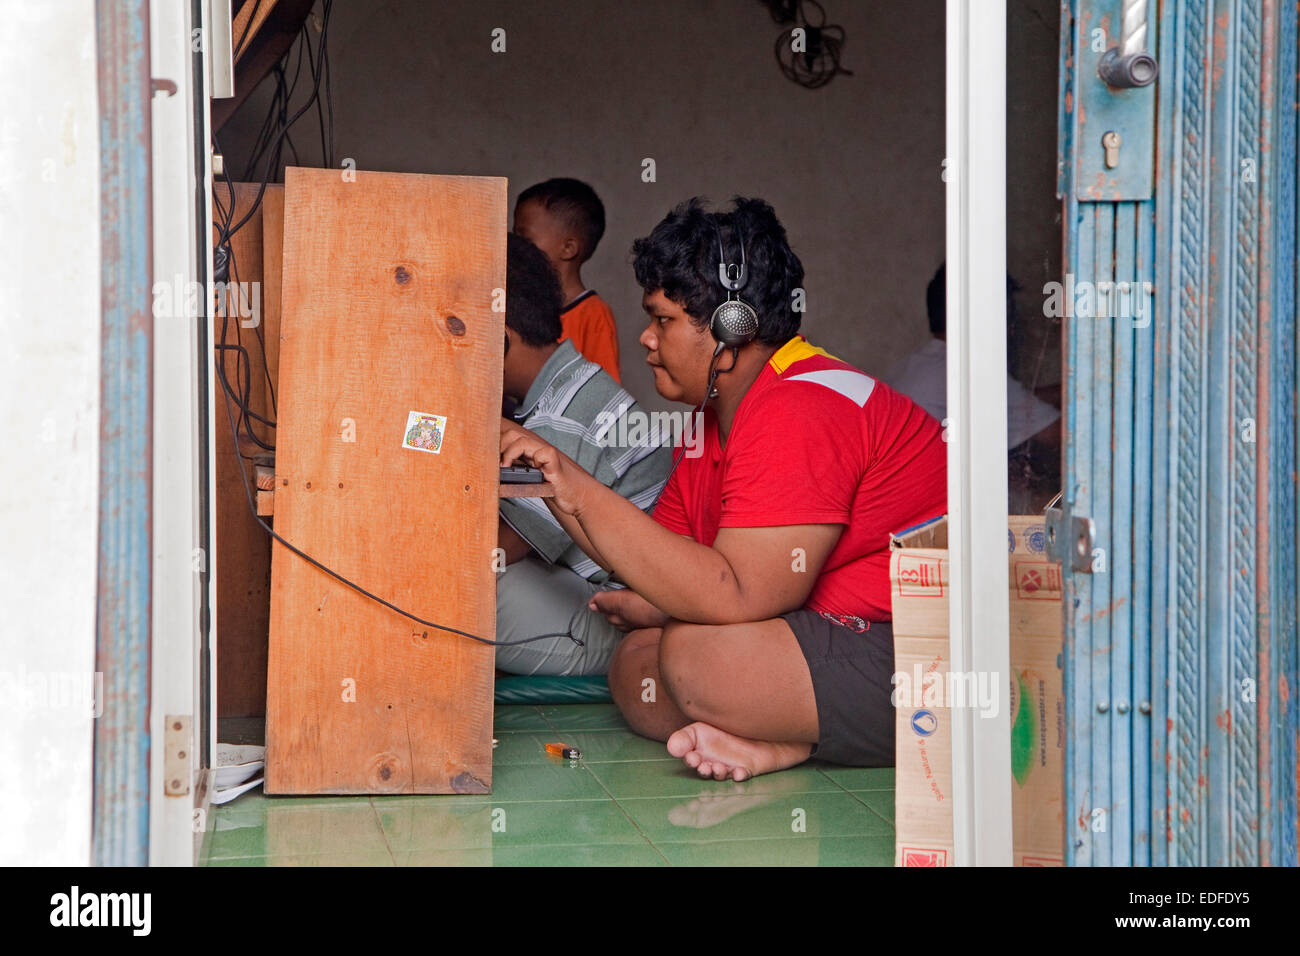 Indonesian teenager surfing in internet café / cybercafé in the capital city Jakarta, Java, Indonesia - Stock Image